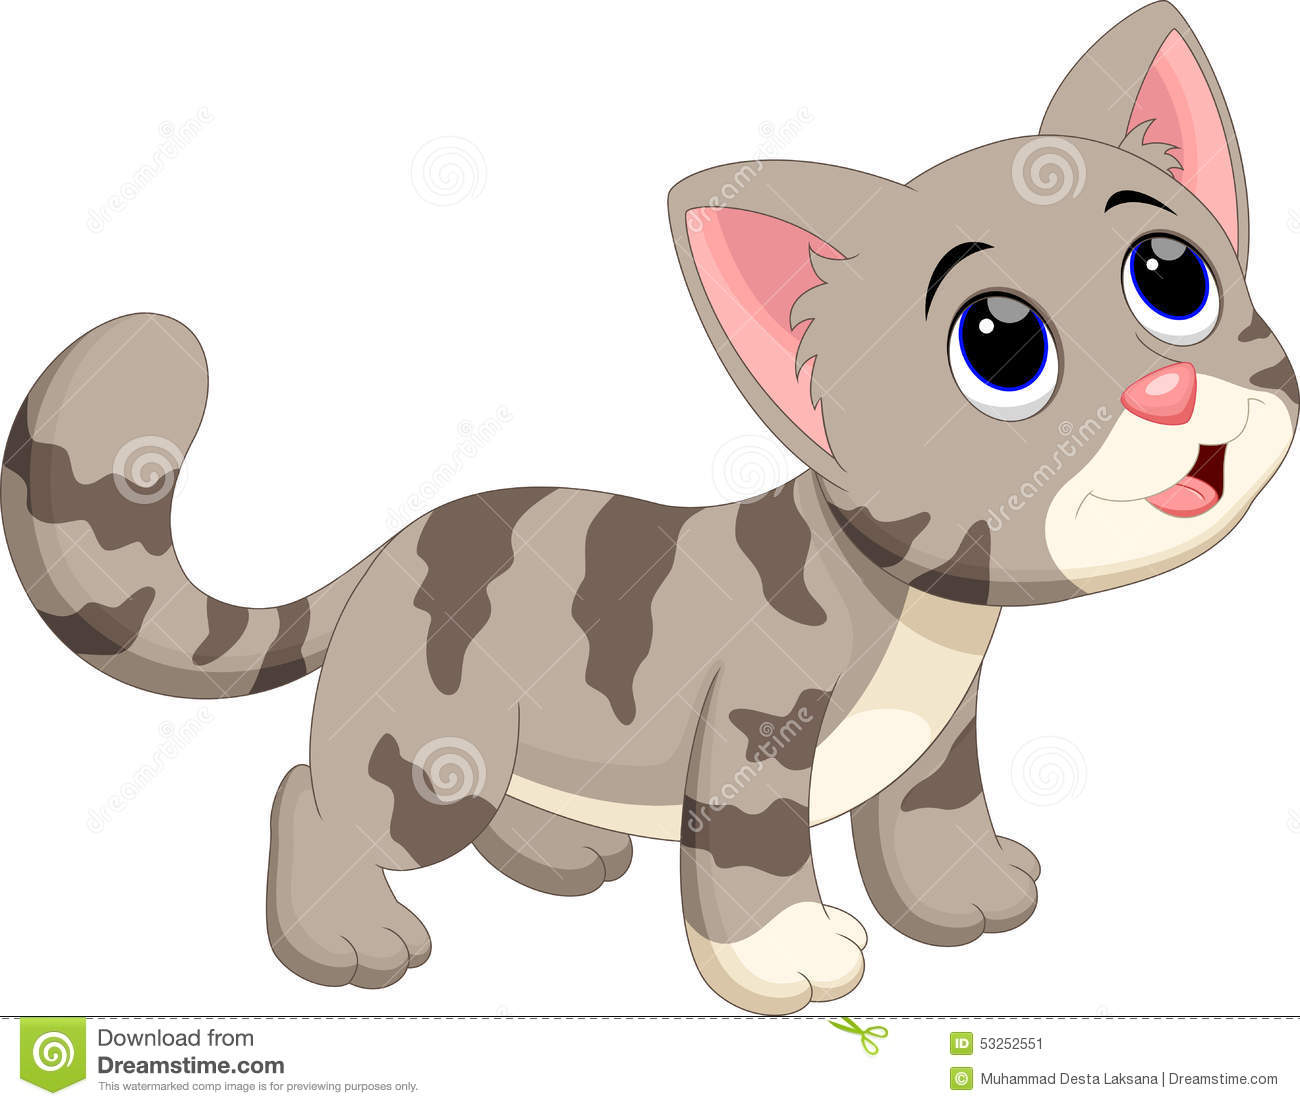 Stock Illustration Cute Cat Cartoon Illustration Image53252551